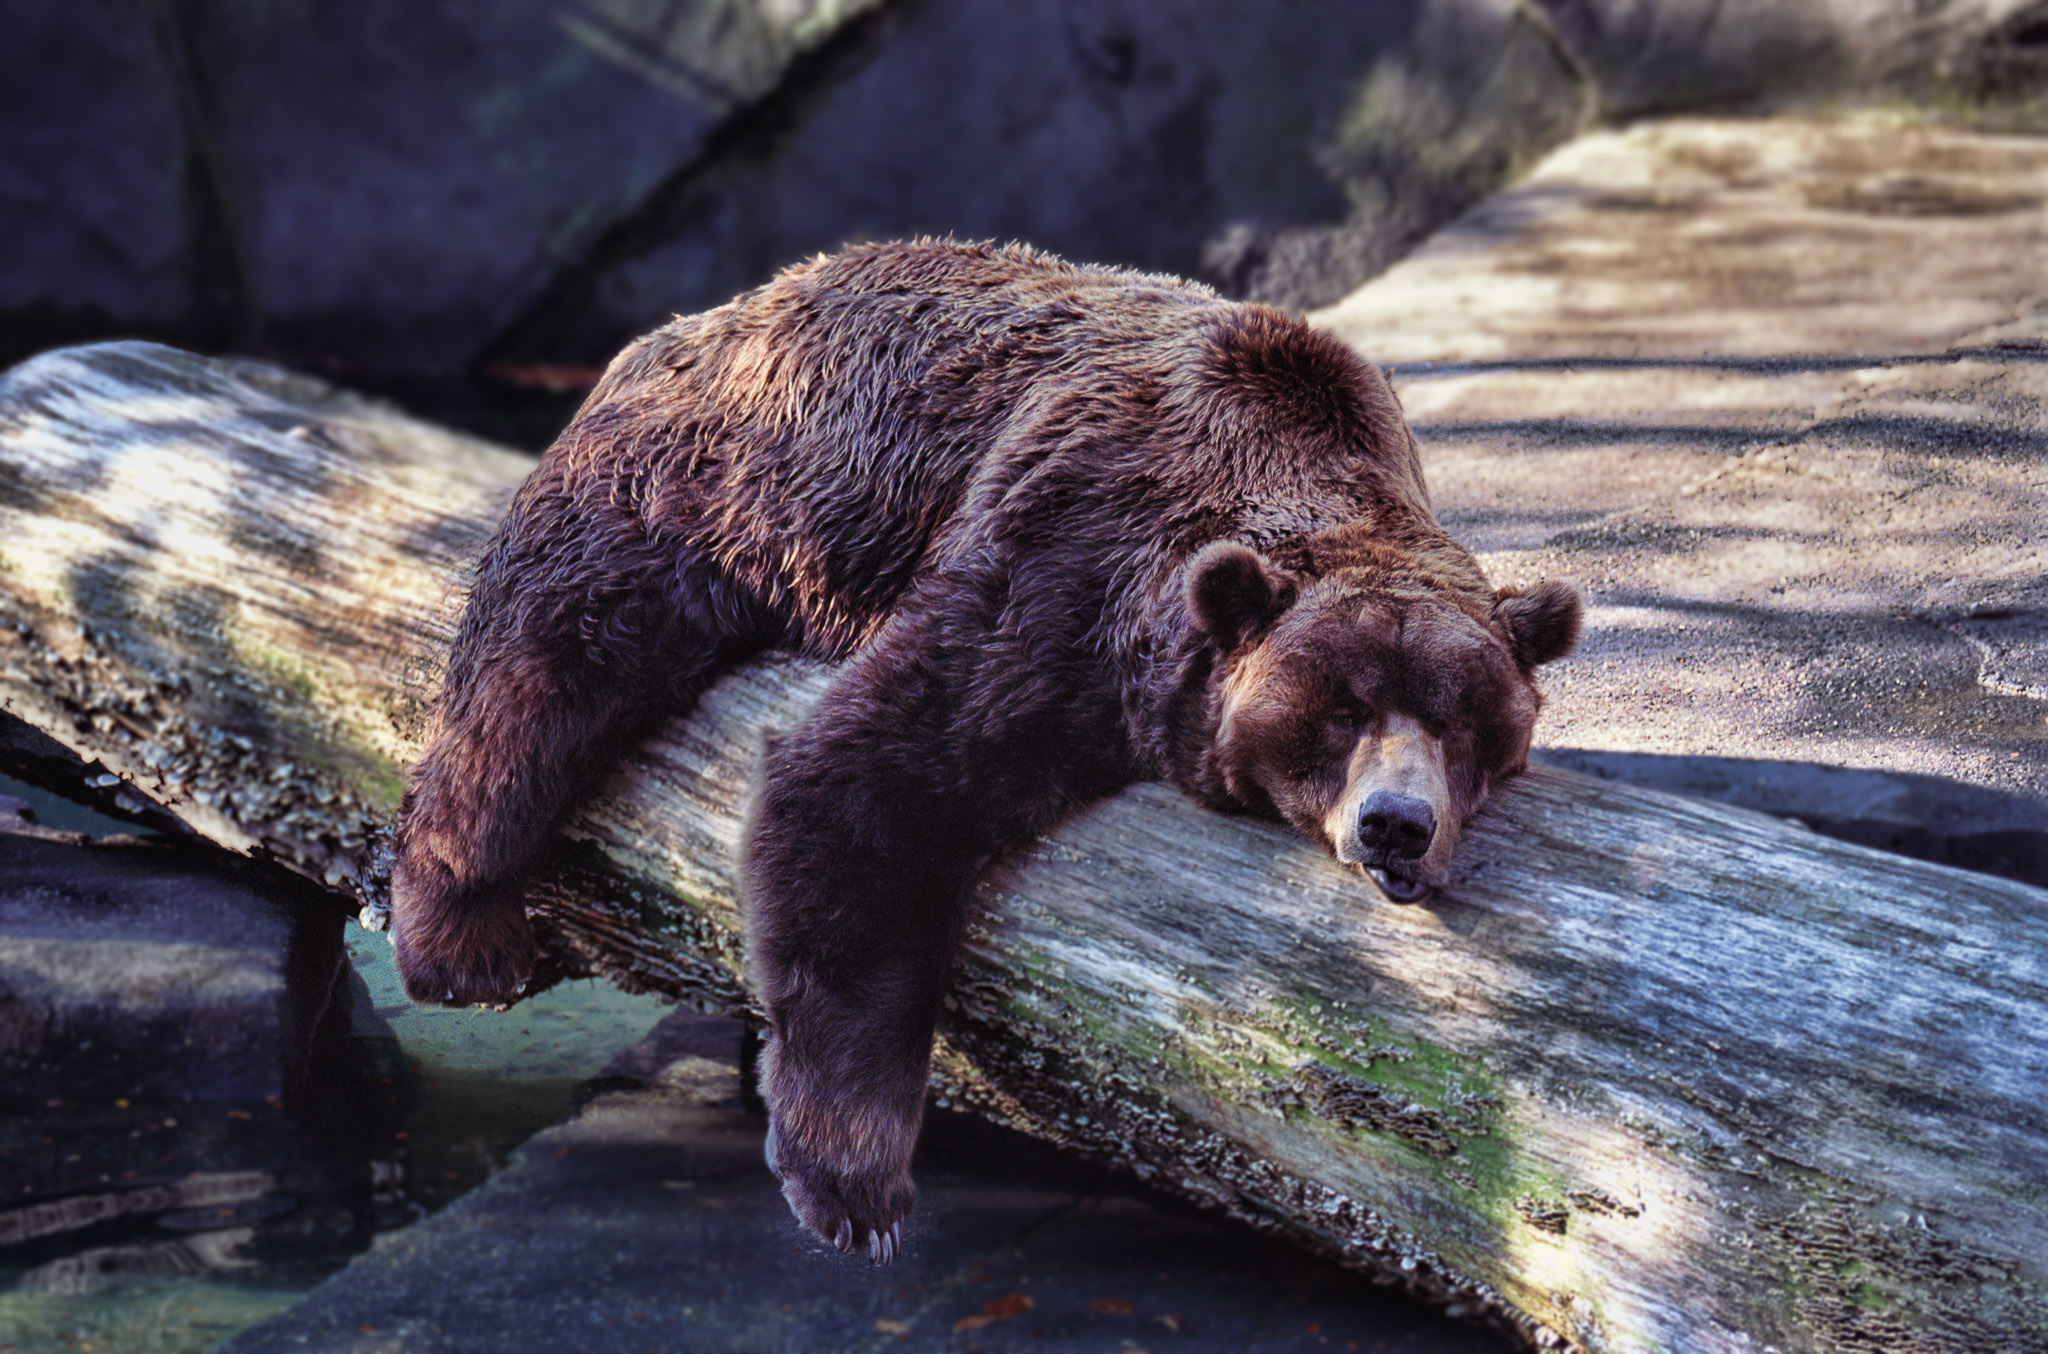 File:Bear Sleeping (11842384304).jpg - Wikimedia Commons